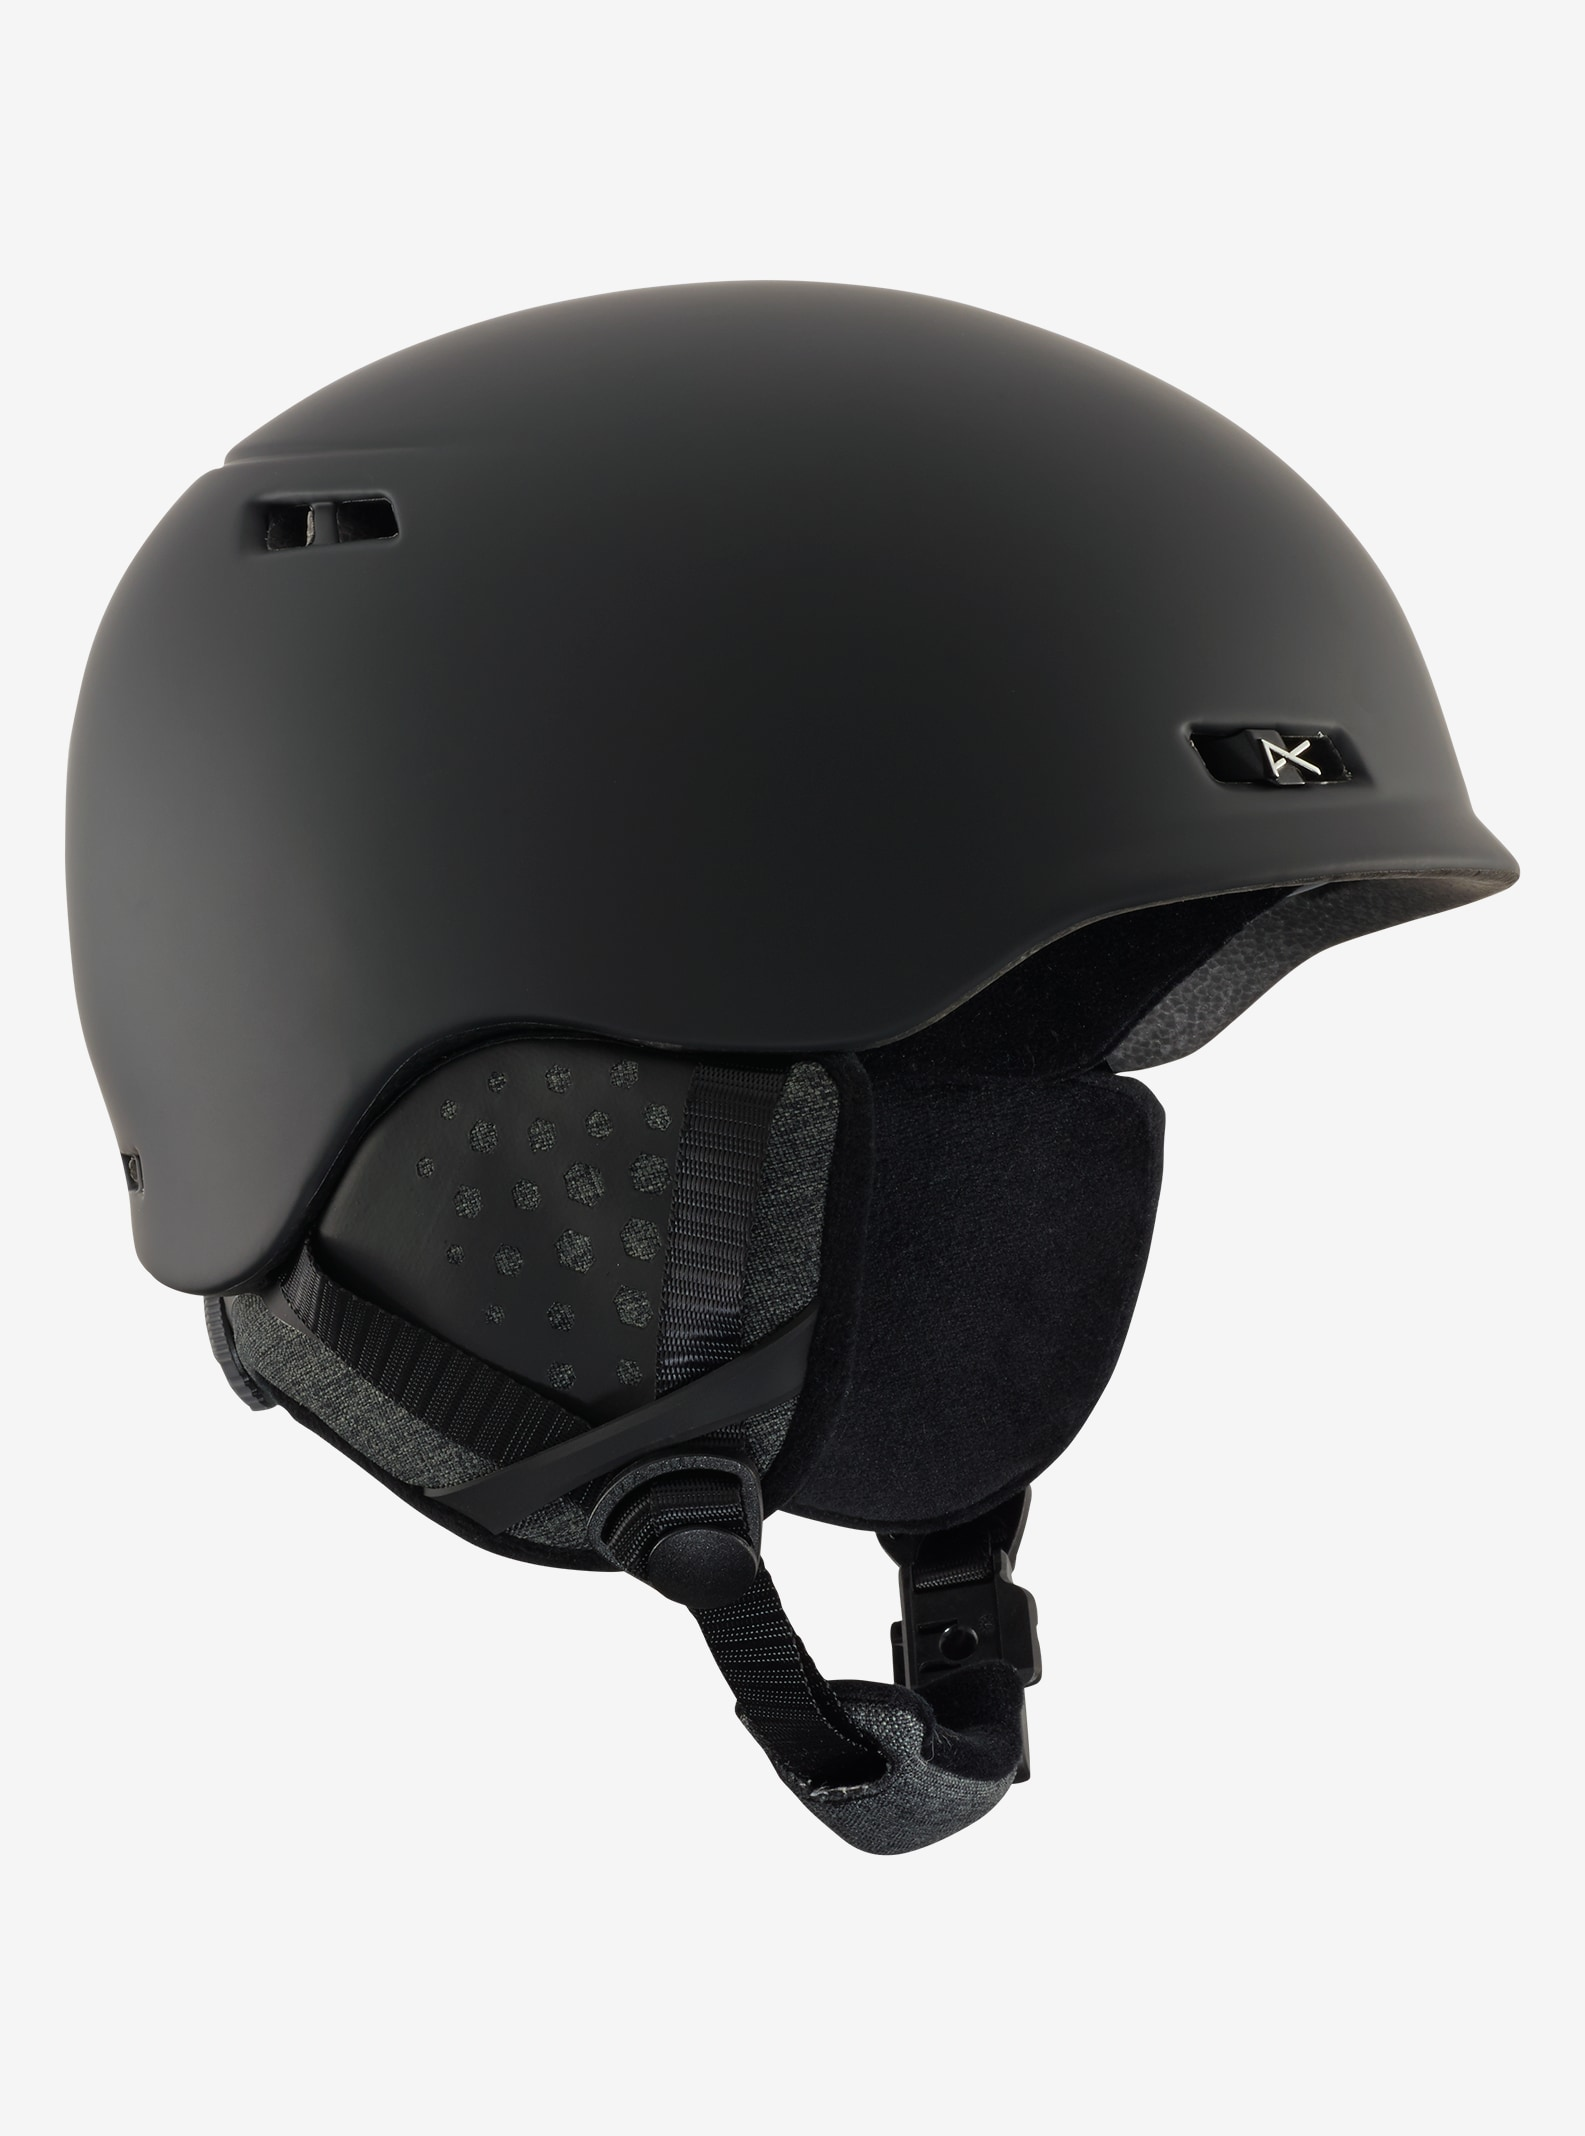 Men's Anon Rodan Helmet shown in Black